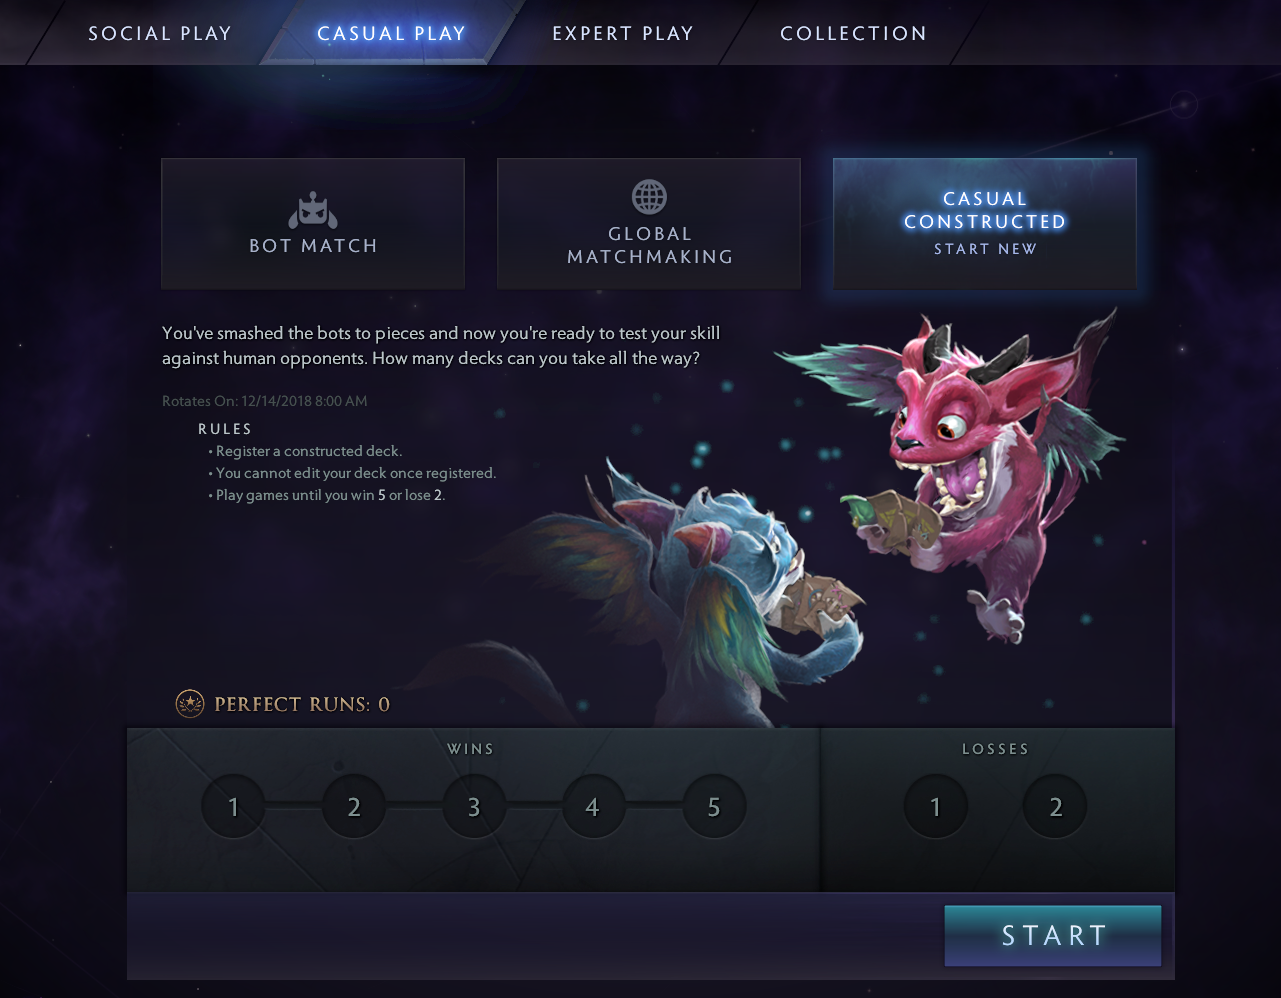 Artifact Beta impressions - Hands on with Valve's new DOTA